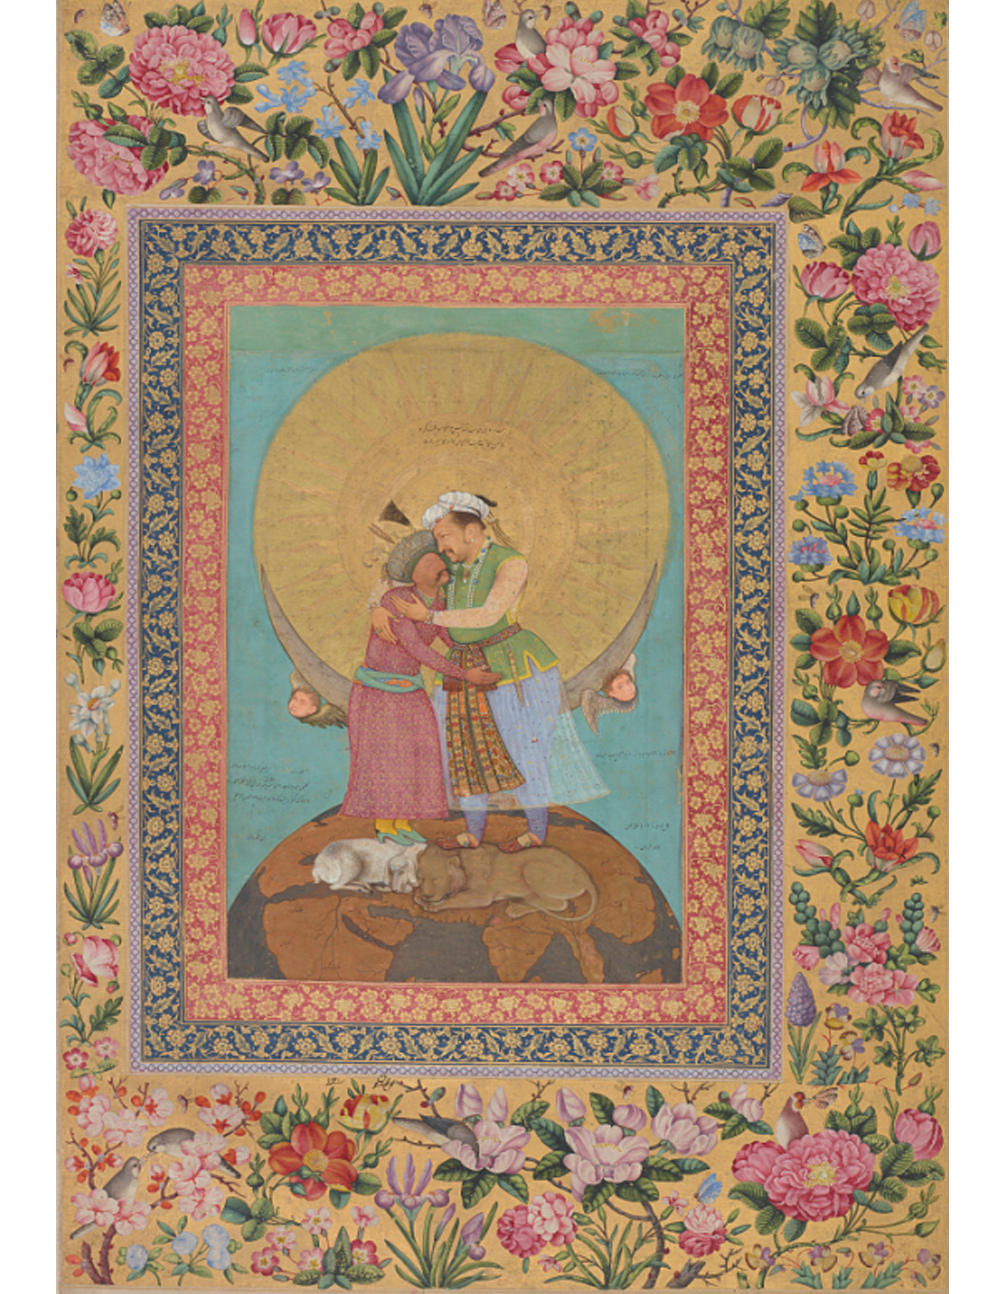 Abu'l Hasan, Allegorical representation of Emperor Jahangir and Shah Abbas of Persia from the  St. Petersburg Album.     Freer Gallery of Art   Appears:  Writing